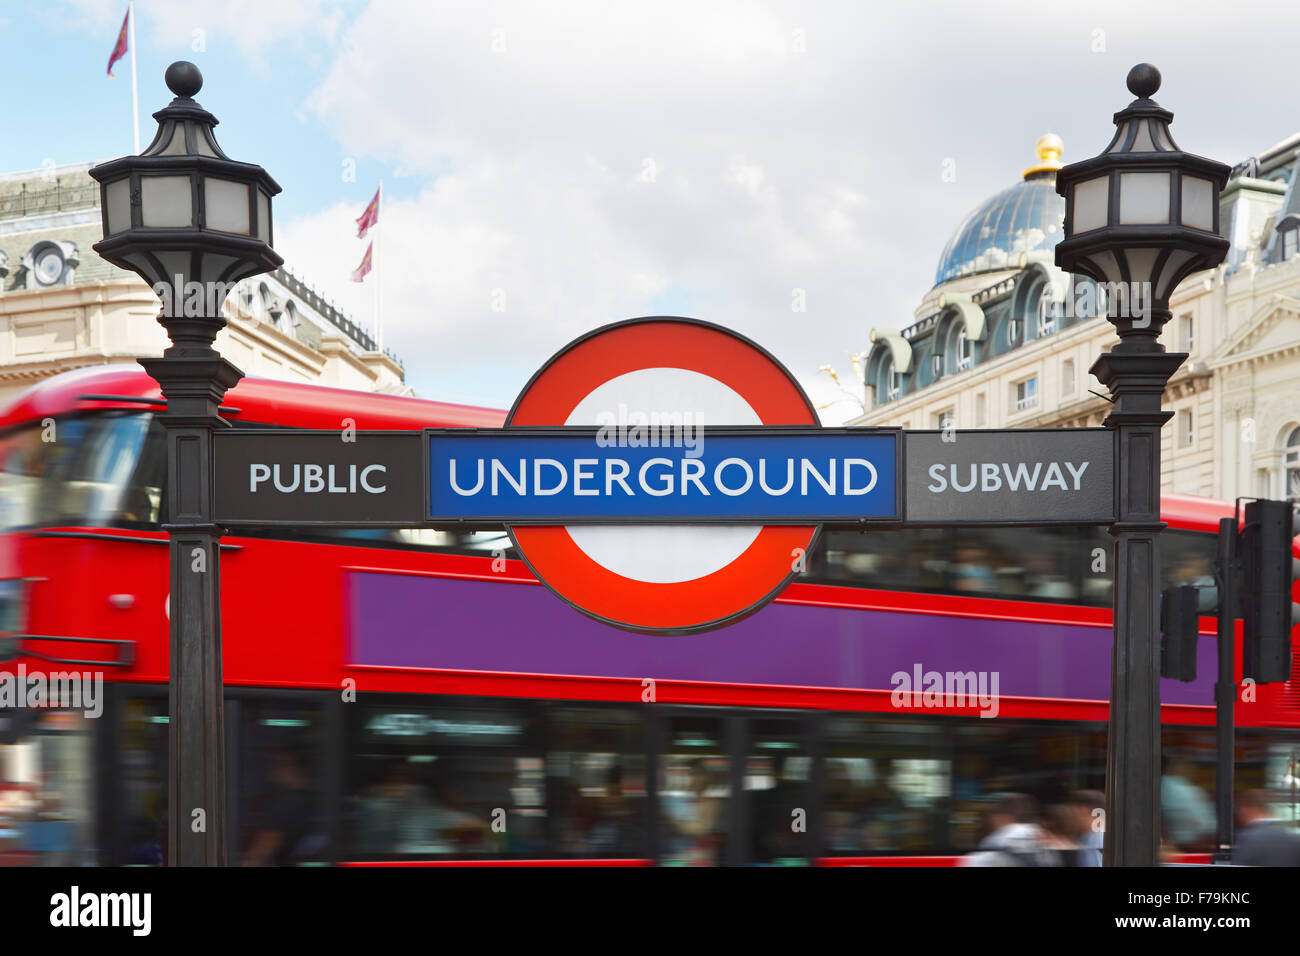 London Underground sign avec lampadaires et bus à impériale rouge contexte Photo Stock